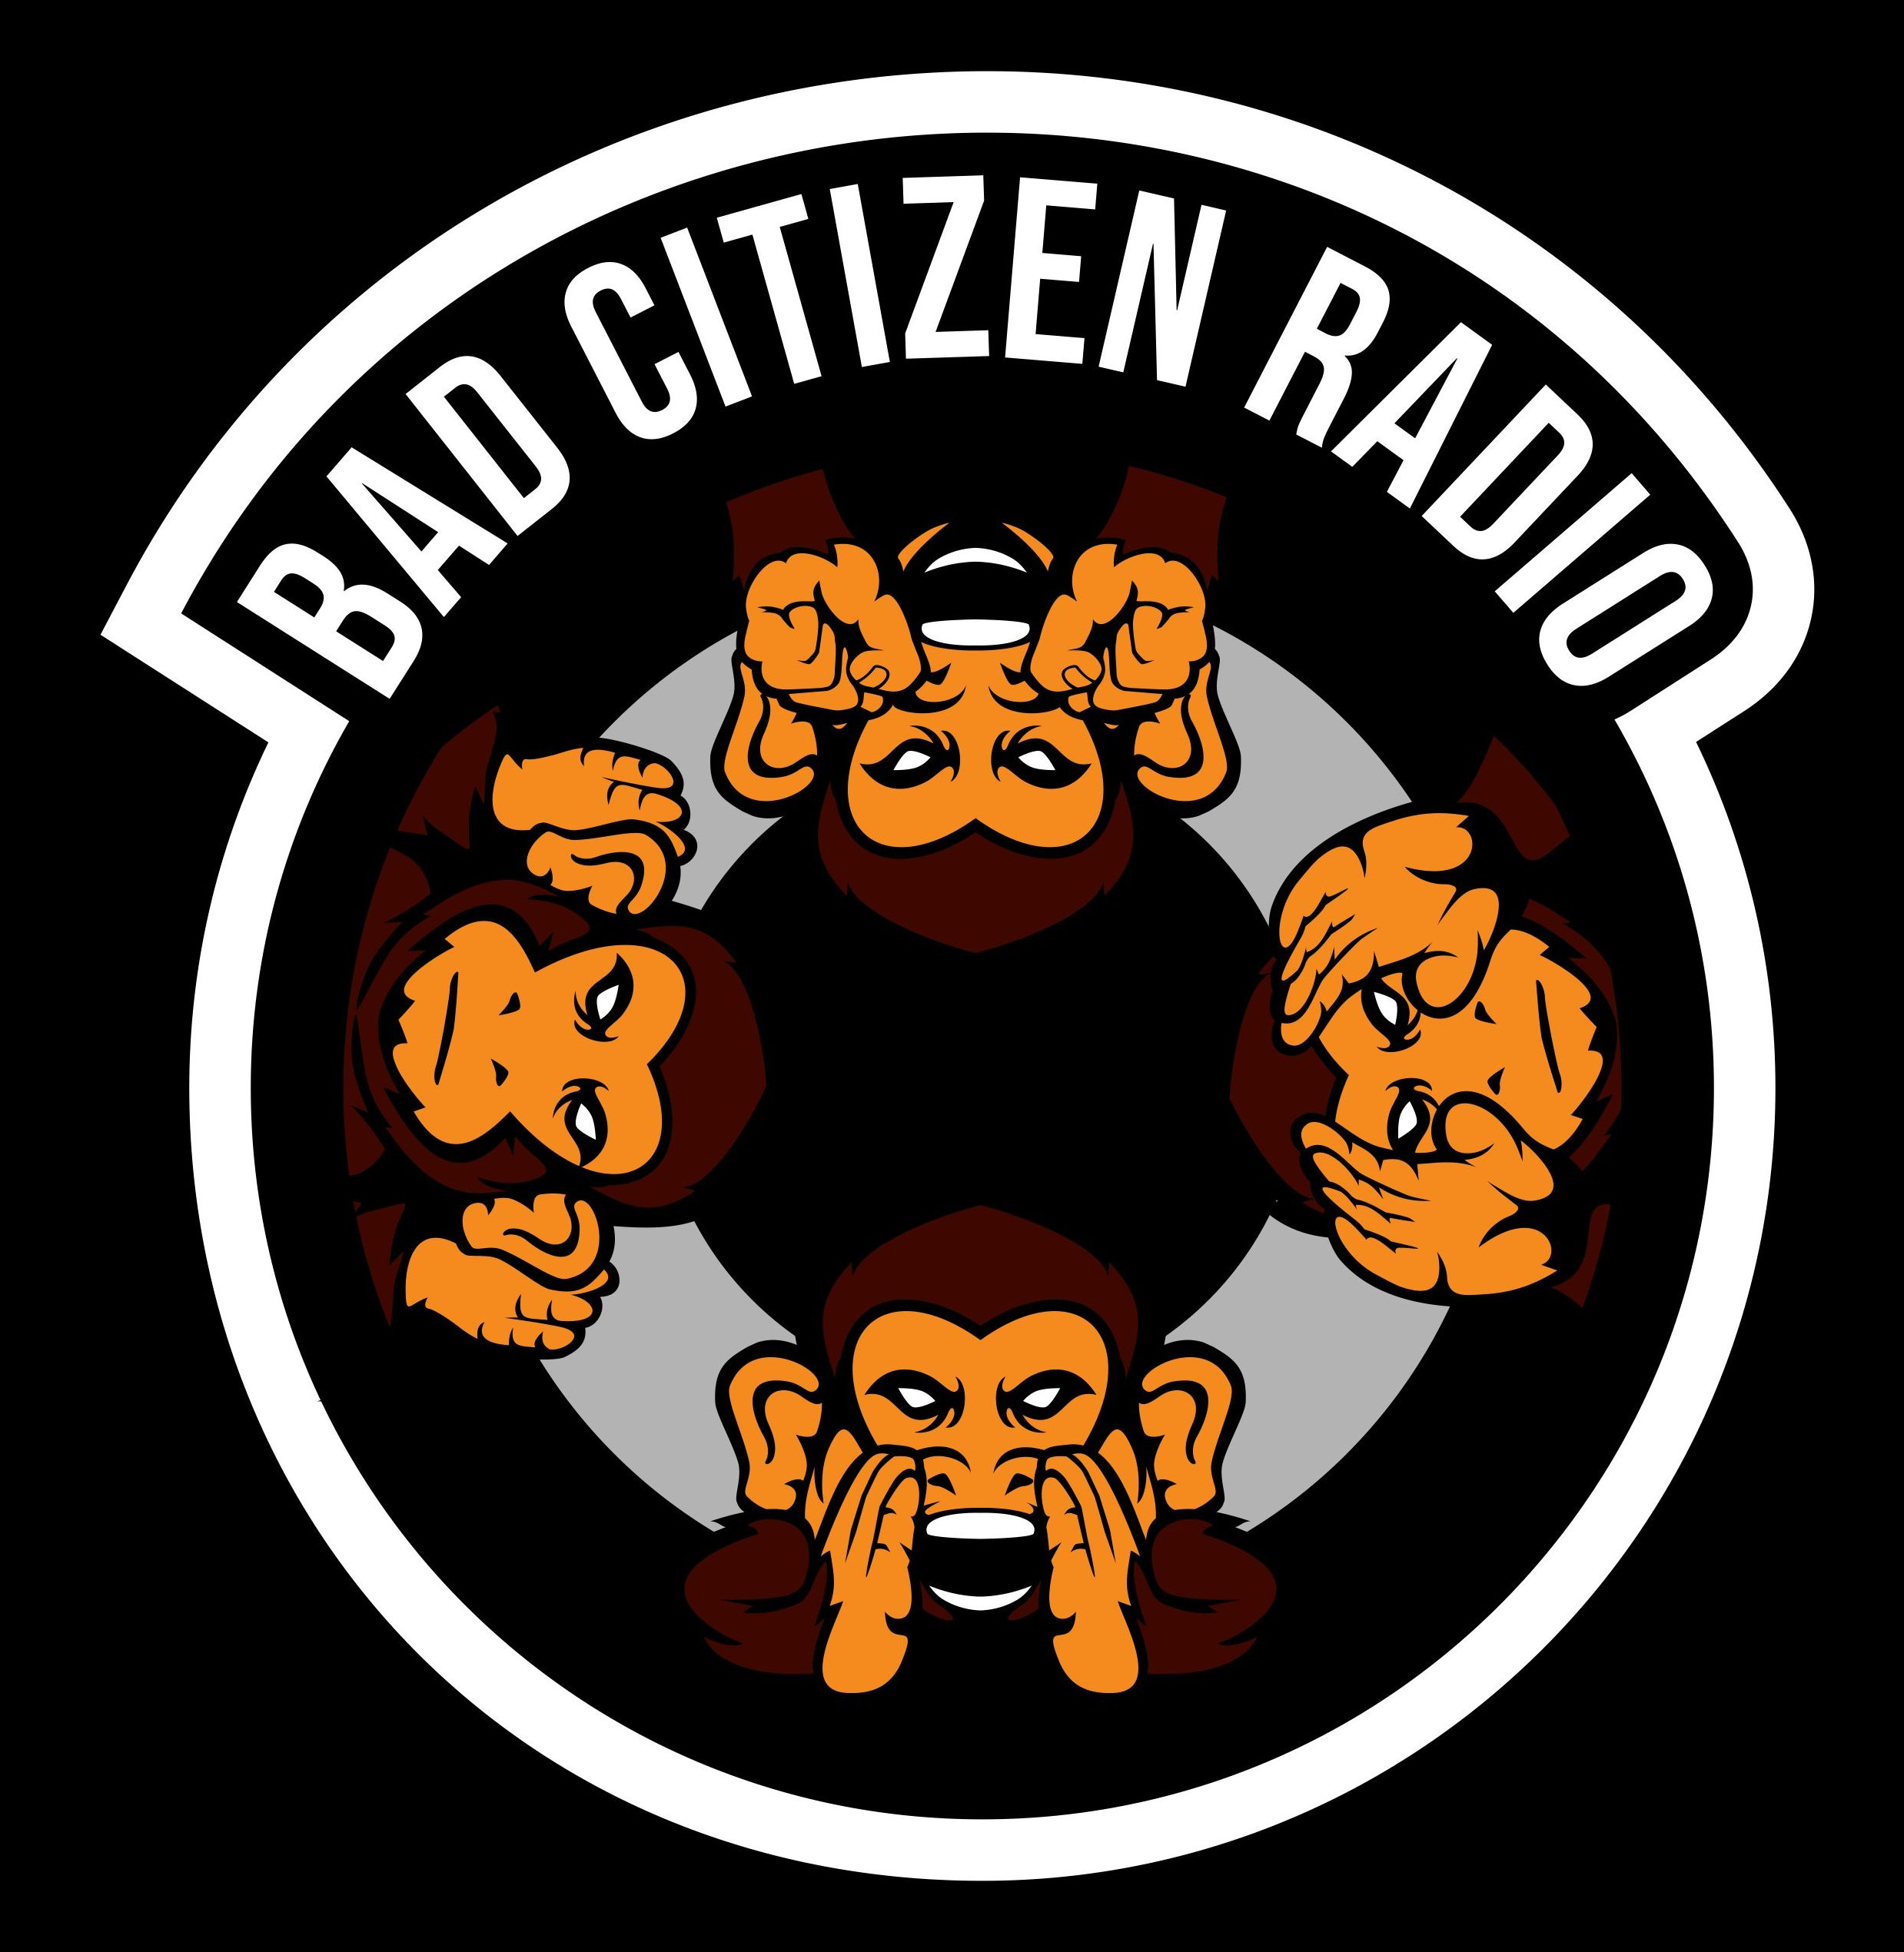 Bad Citizen Radio